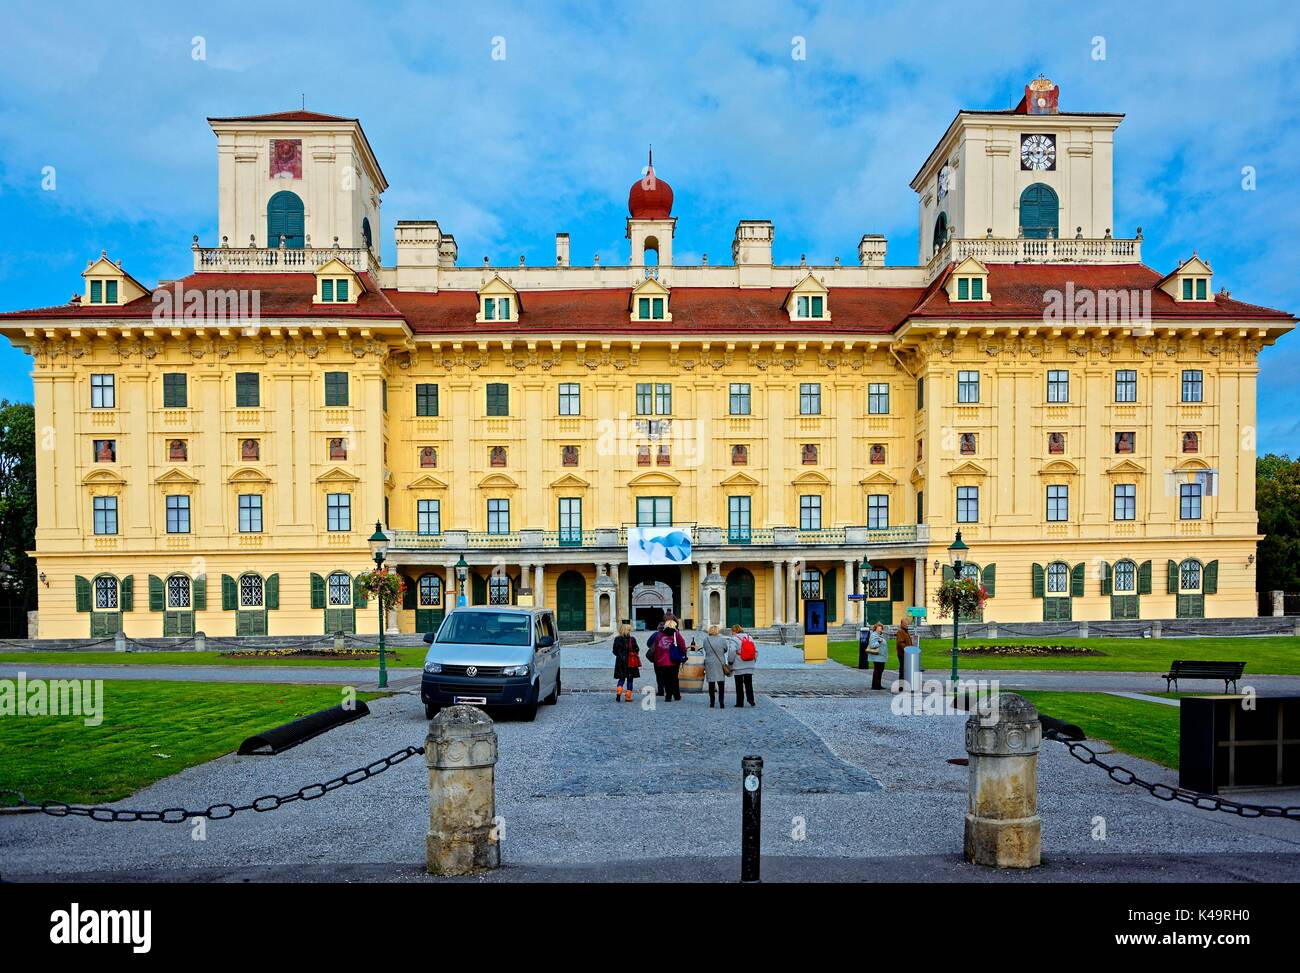 The Esterhazy Palace Is Now Considered One Of The Landmarks Of Eisenstadt. - Stock Image